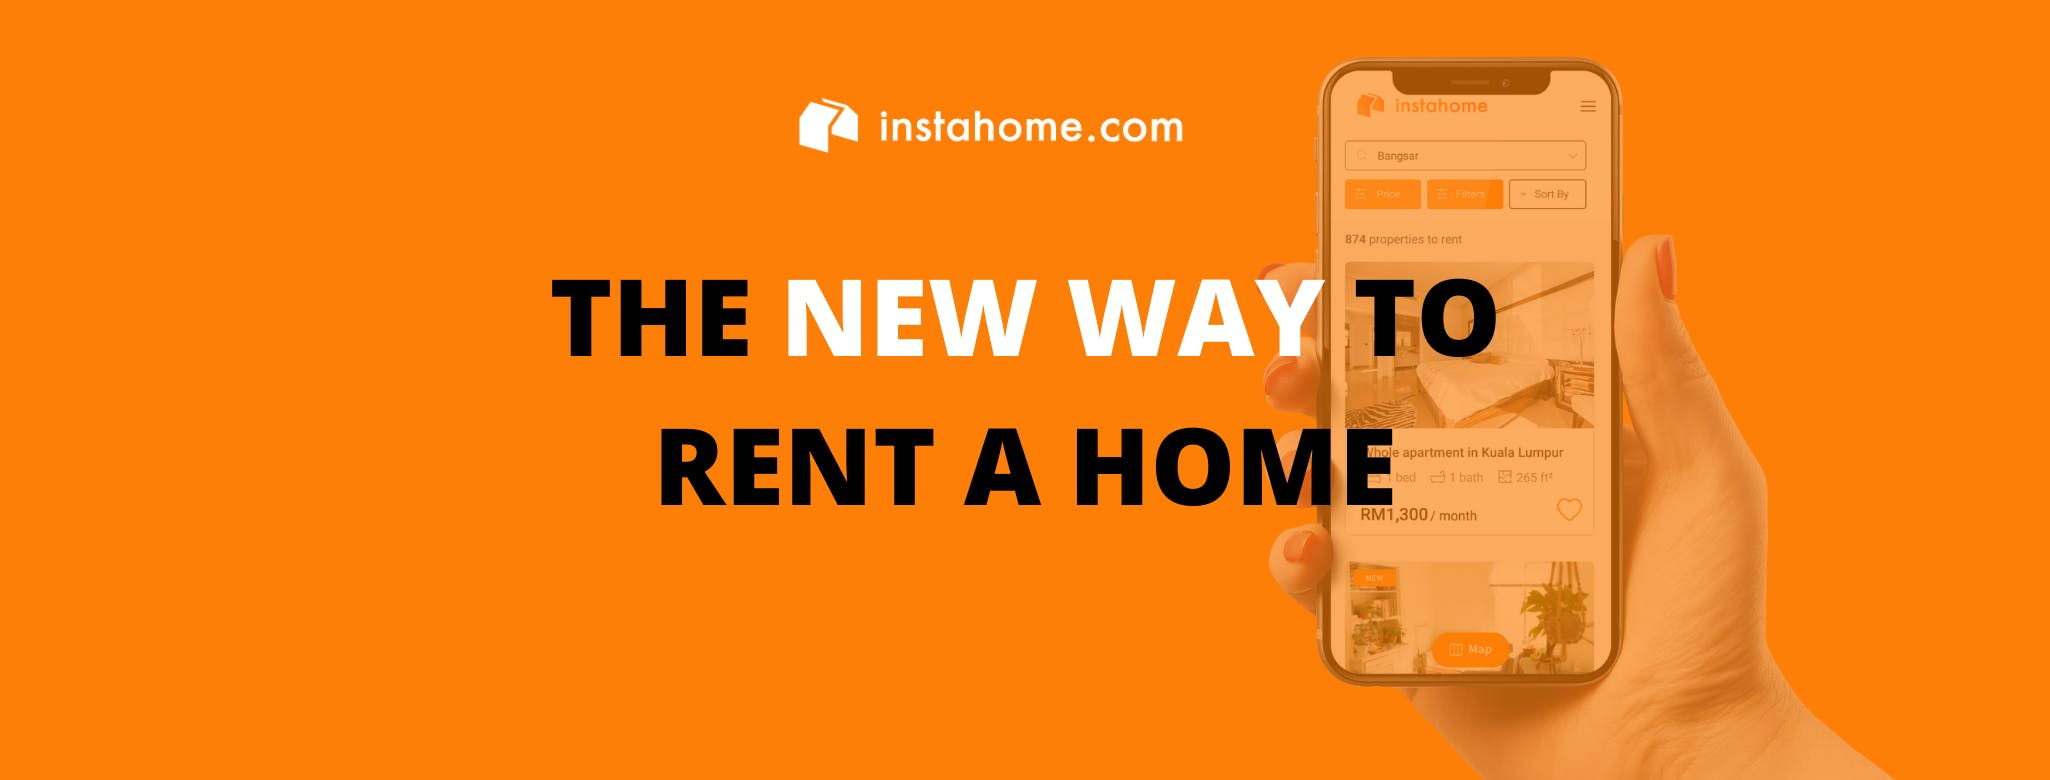 Experience The New Way to Rent A Home